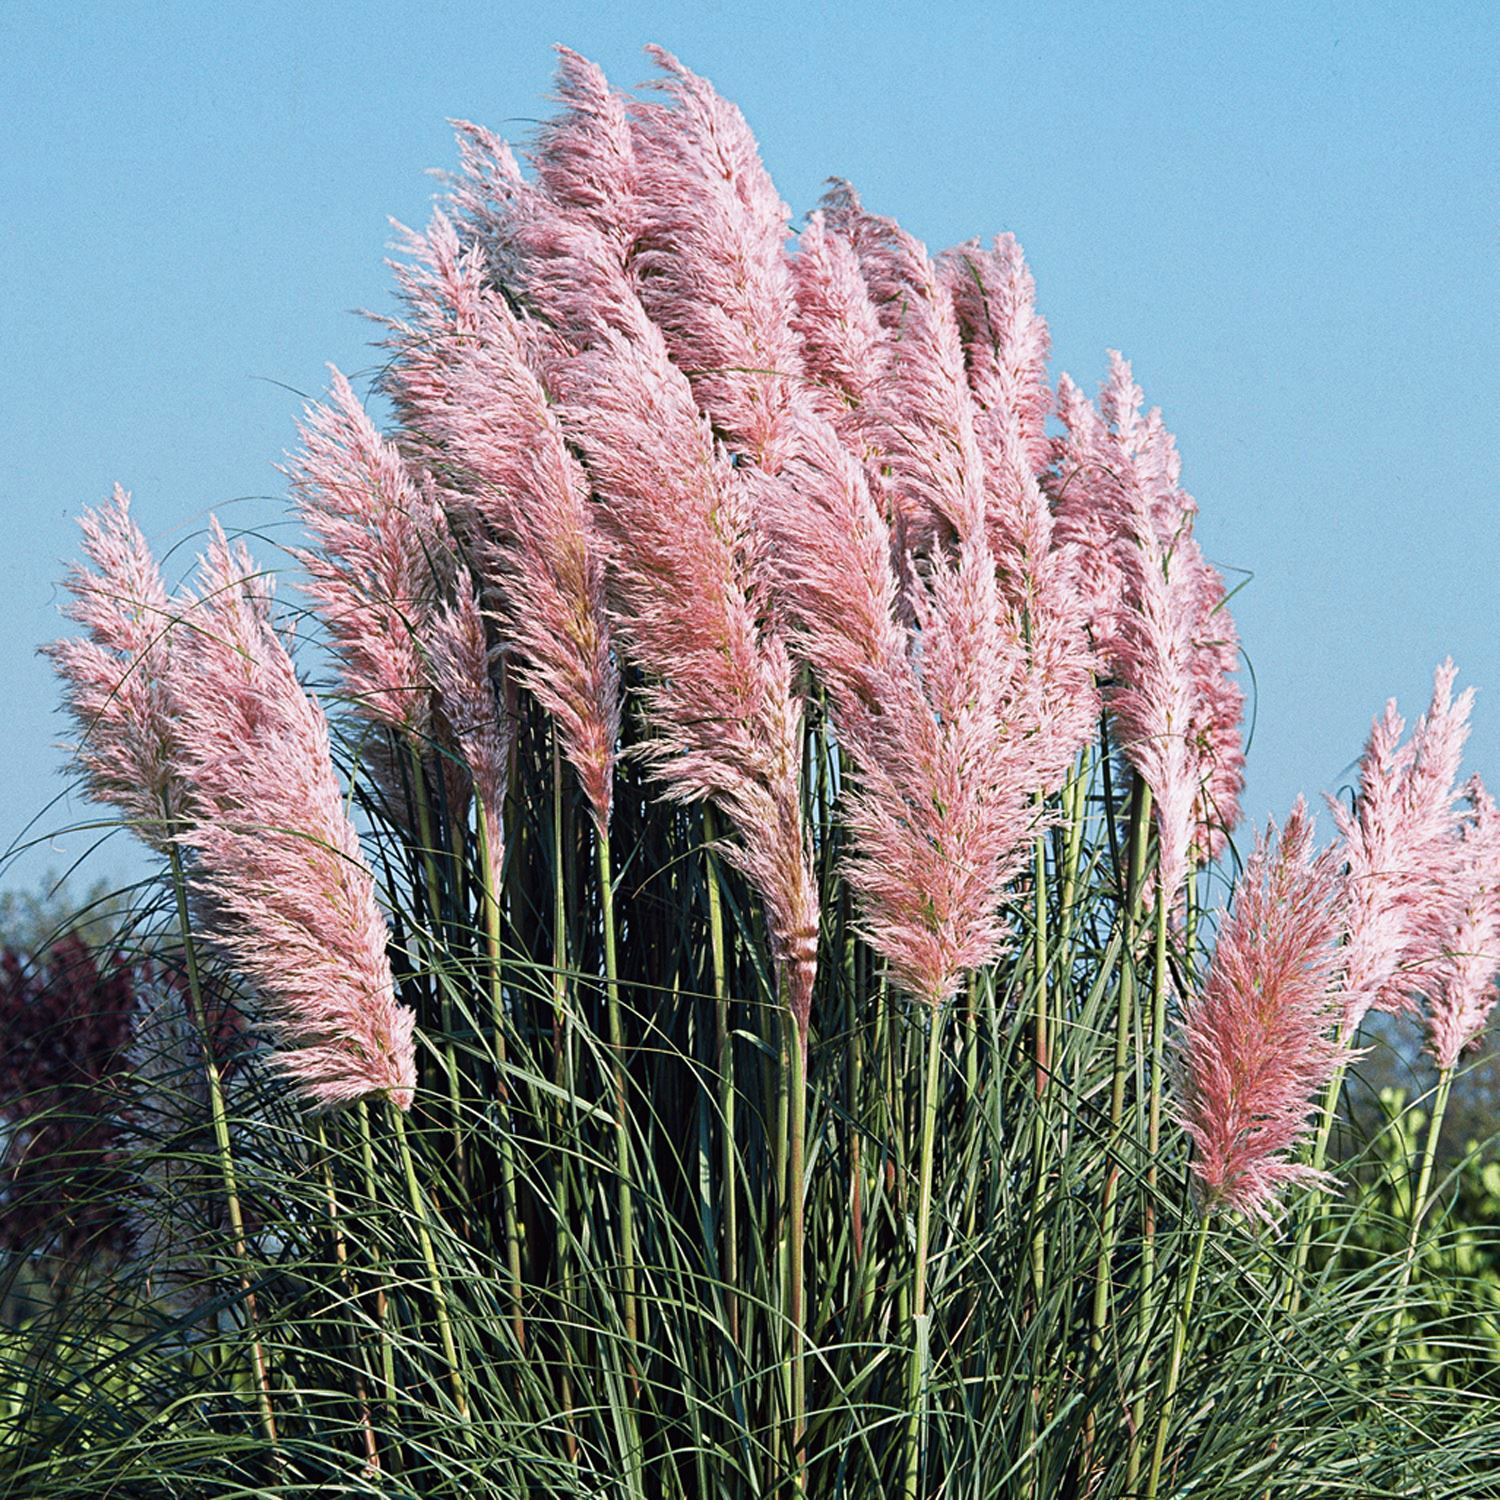 Cortaderia-selloana-Pink-Feather-Pink-Pampas-Grass CAN USE INSTA.jpg